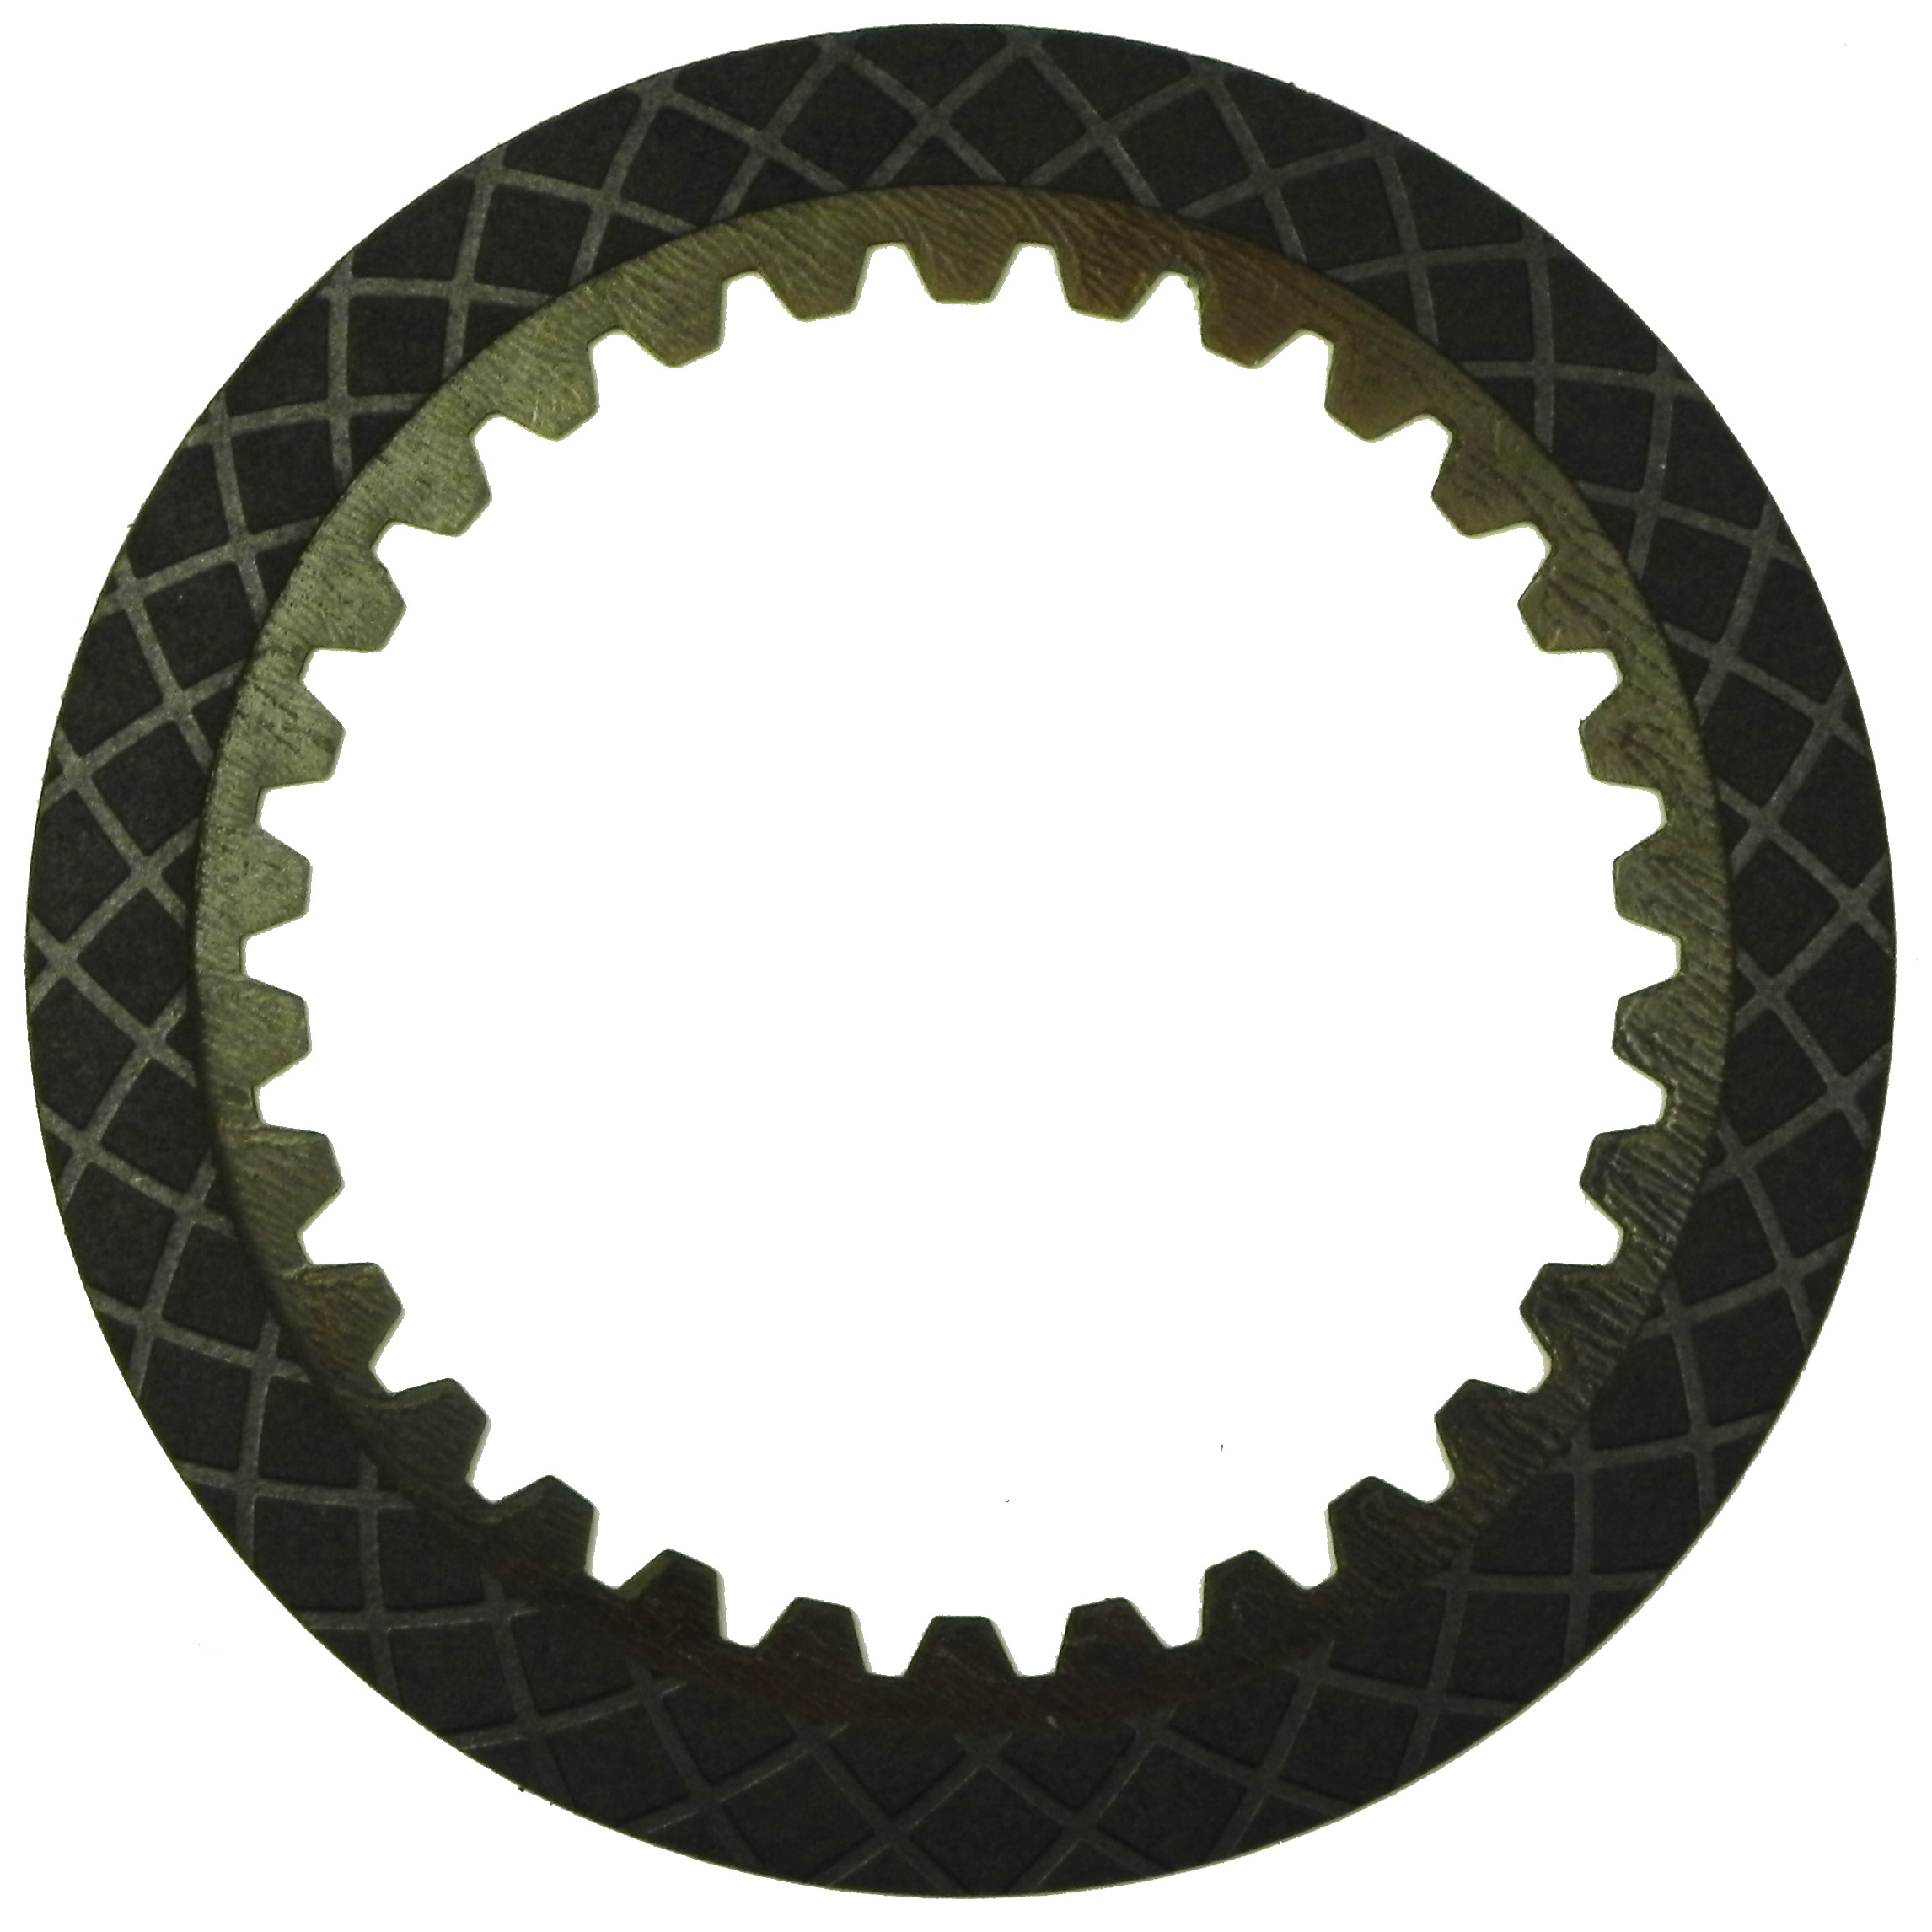 R571863 | 2012-ON Friction Clutch Plate GPX 2nd, 3rd GPX